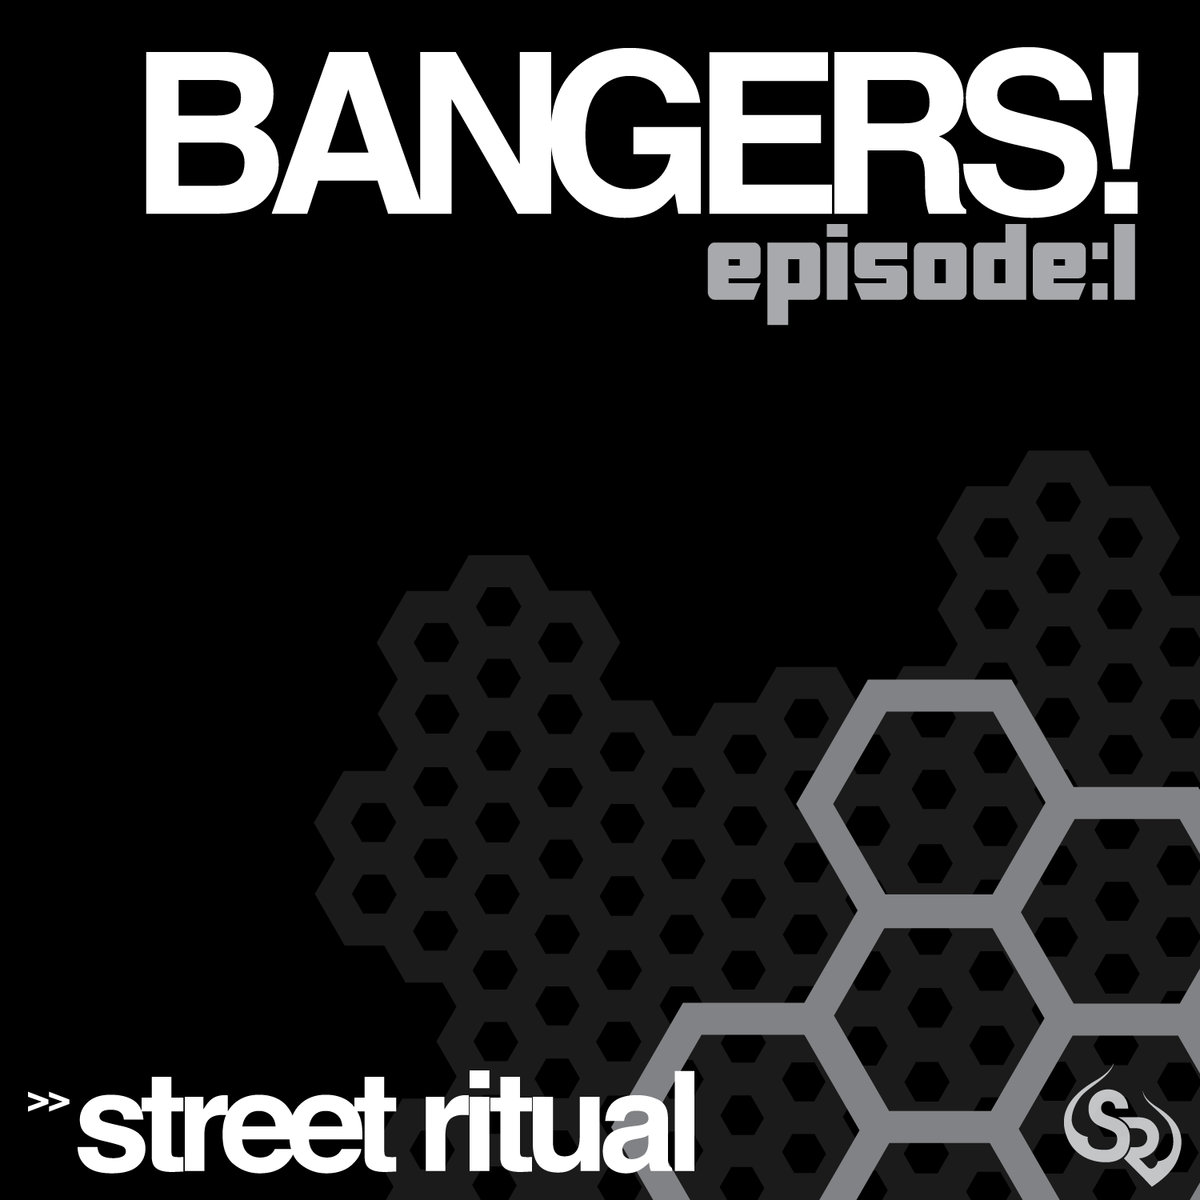 WALA - Chaiya @ 'Various Artists - Bangers! Episode:1' album (bass, electronic)